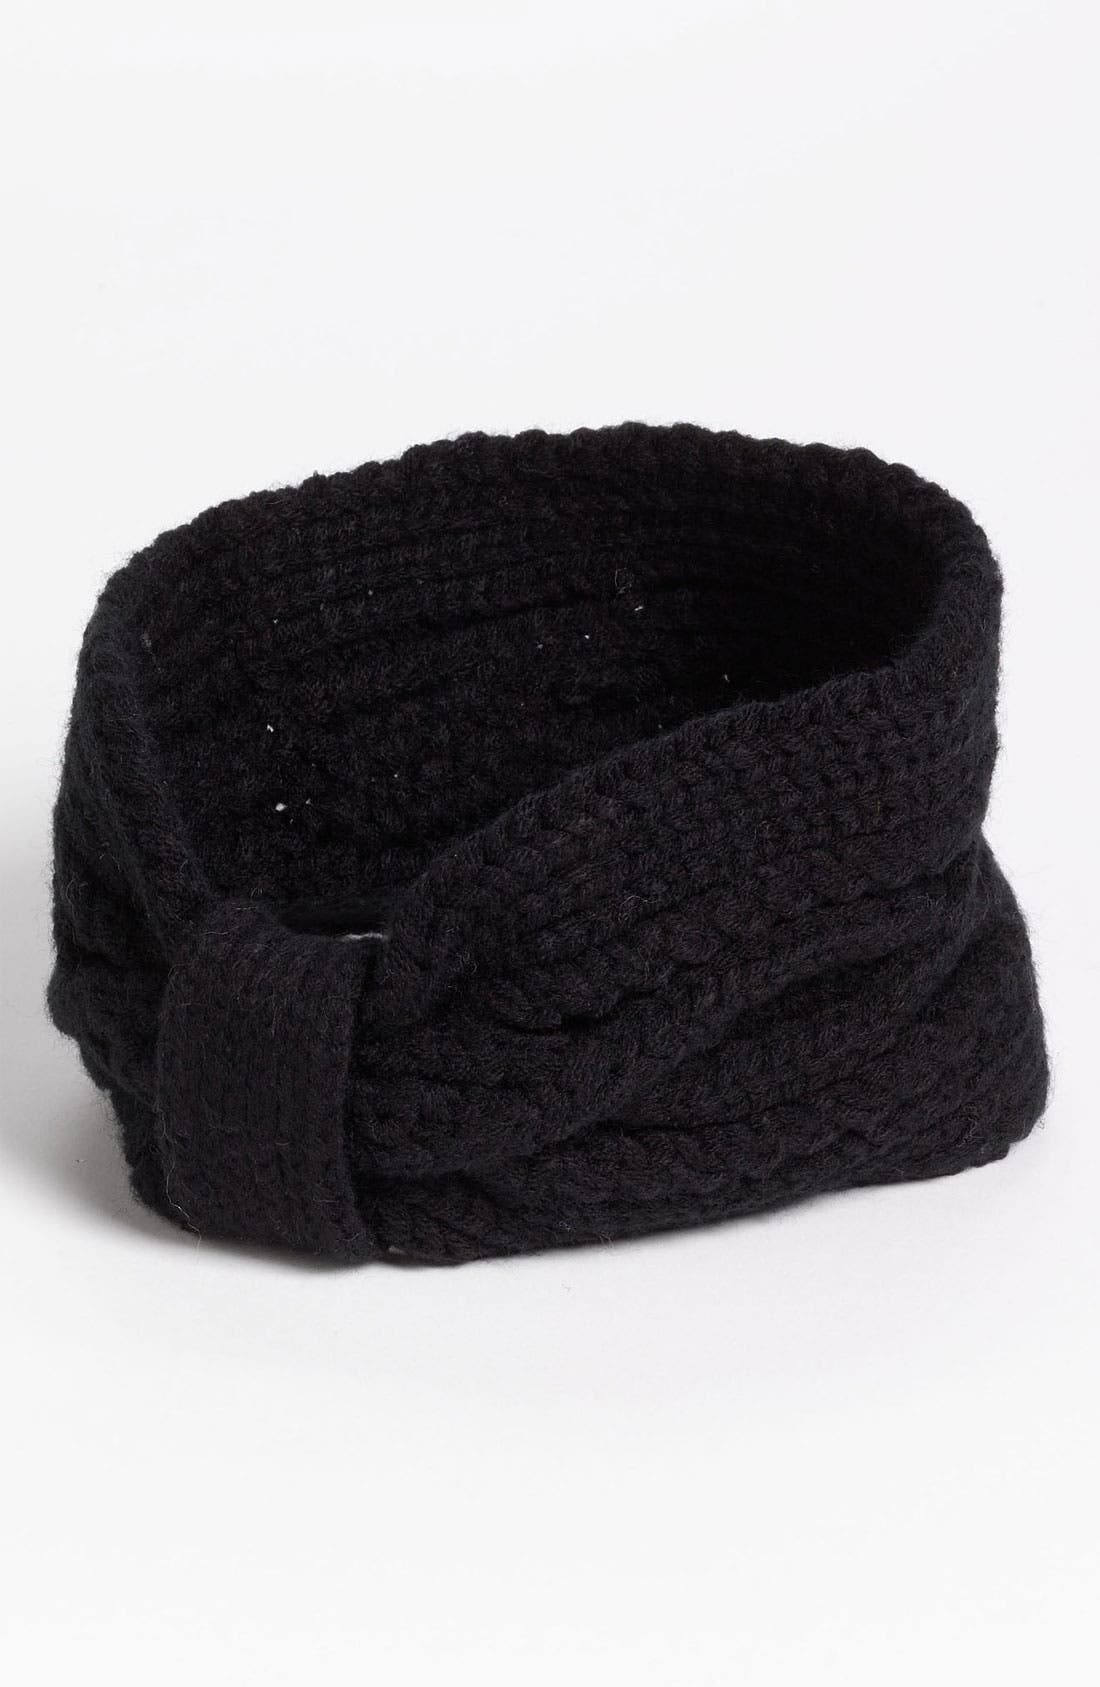 Alternate Image 1 Selected - BP. Wide Bow Knit Headband